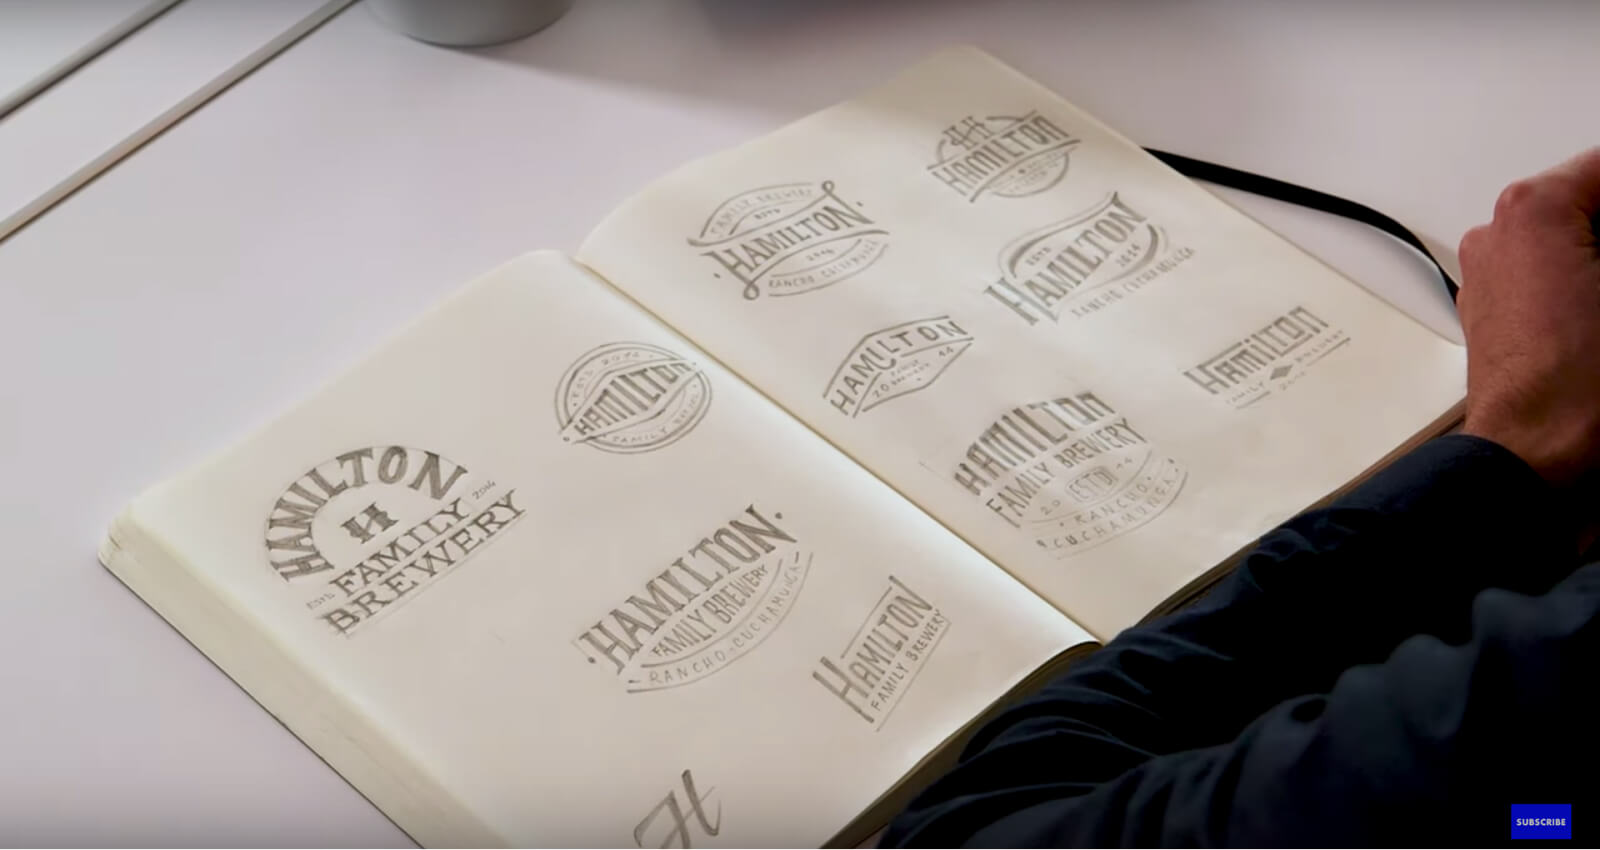 """Hamilton family brewery"" brand sketches"